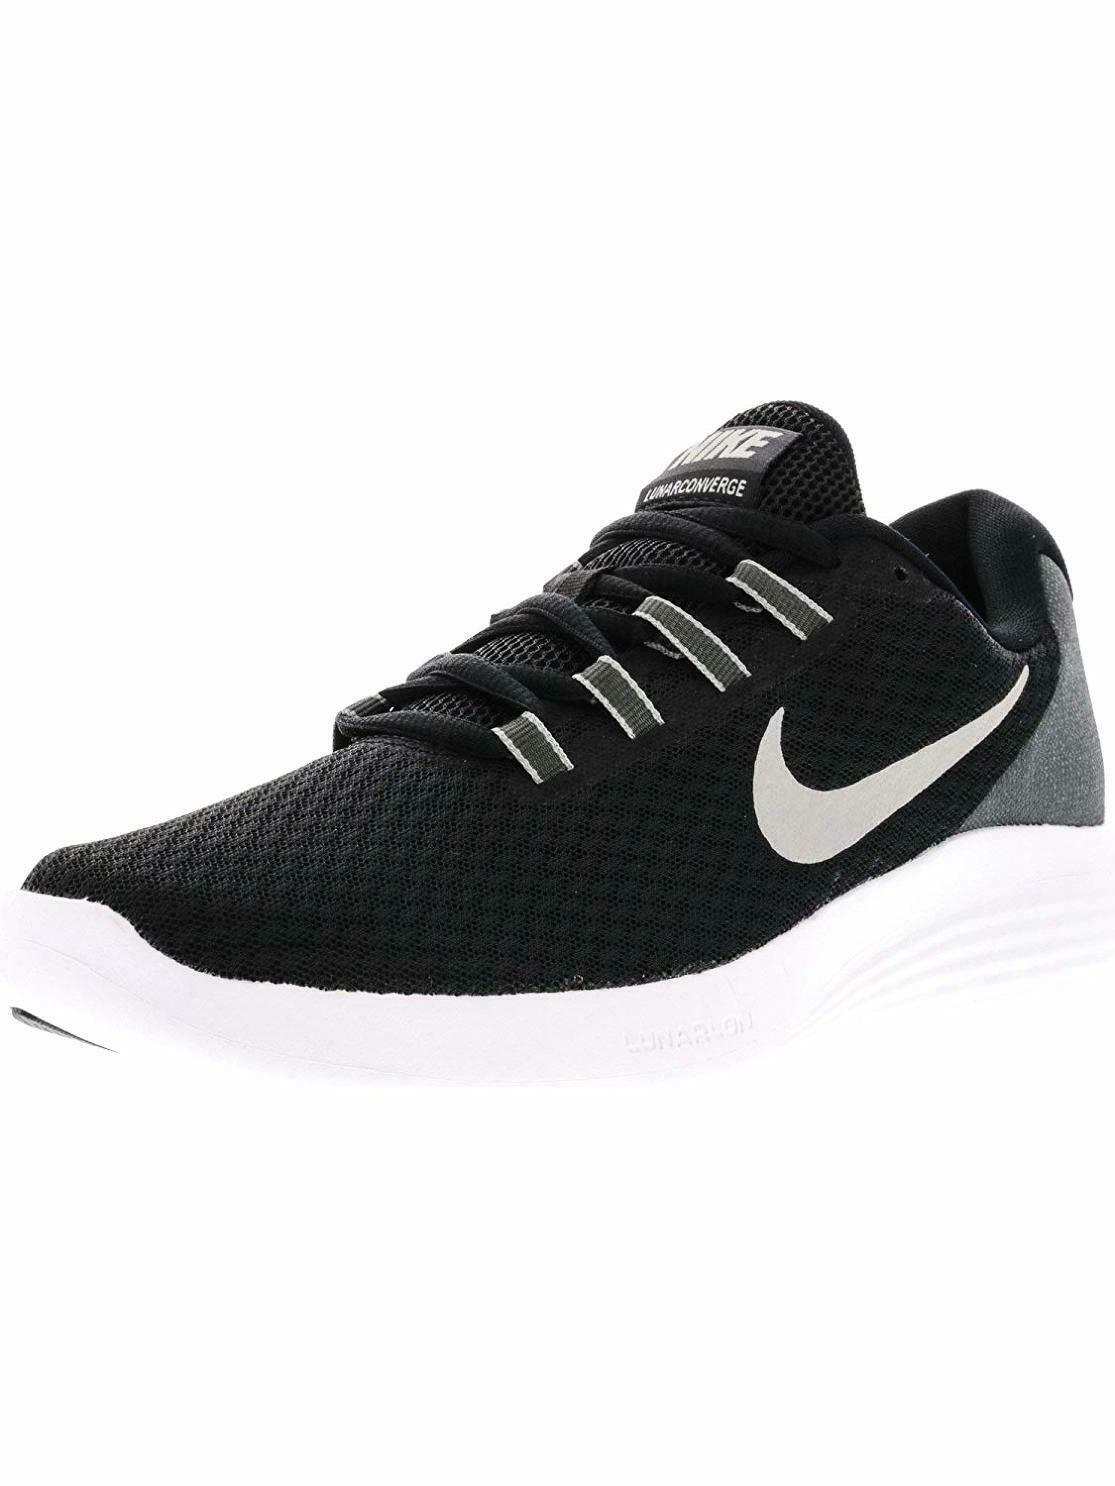 NIKE Men's LunarConverge Running shoes - Choose SZ color